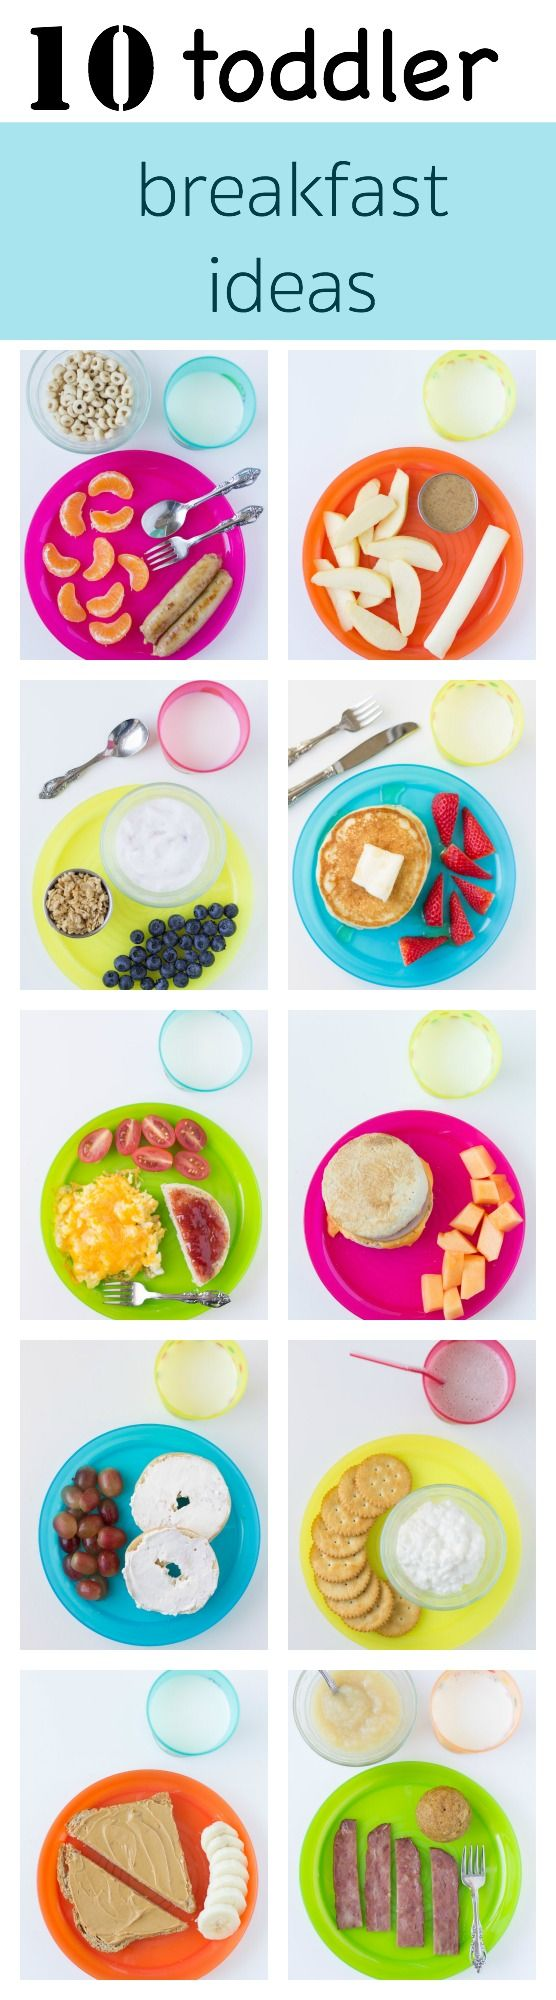 cooking breakfast for ten children Instead, try these 10 toddler and little kid breakfast ideas to help you steer clear of the pop tarts and krispy kremes  thank you for this list of recipes, blair my children like fruit roll-ups  again thanks keep sharing reply blair says february 17, 2017 at 2:32 pm.